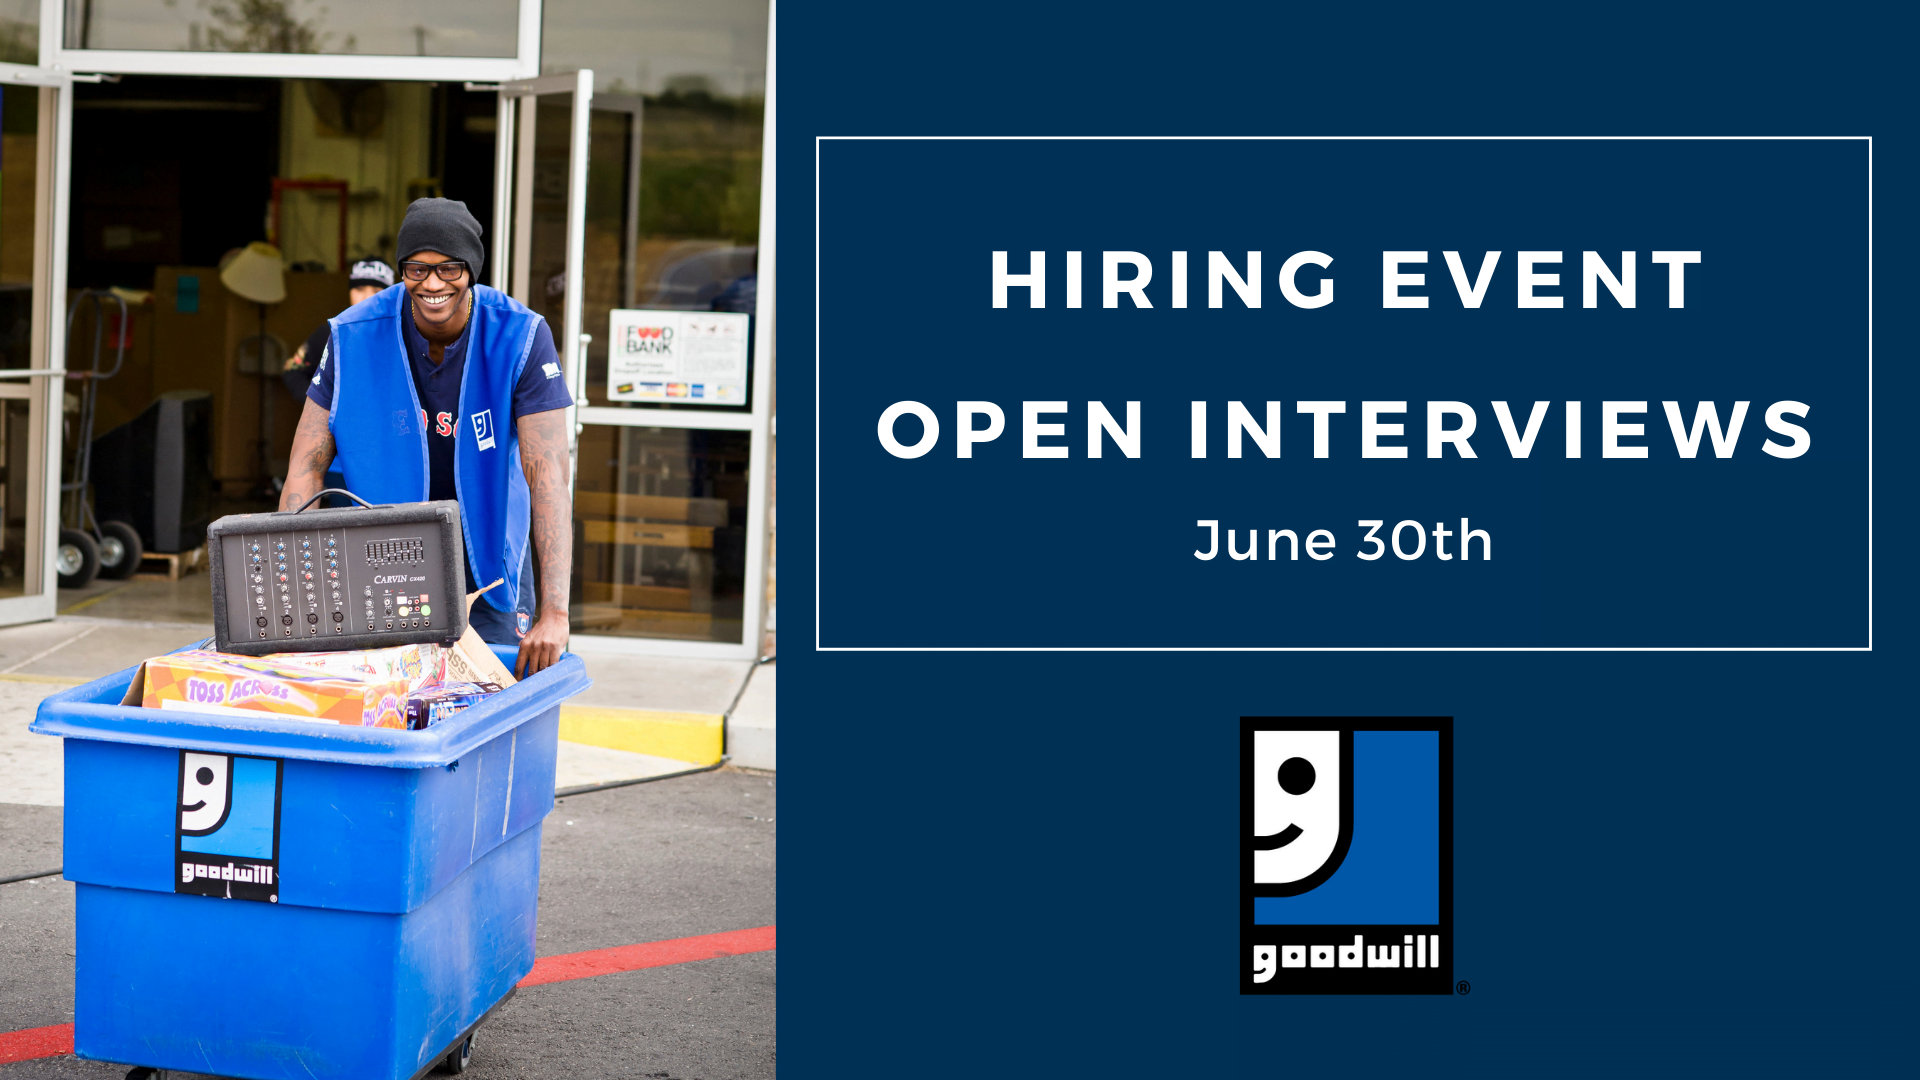 Goodwill to Host Statewide Hiring Event June 30